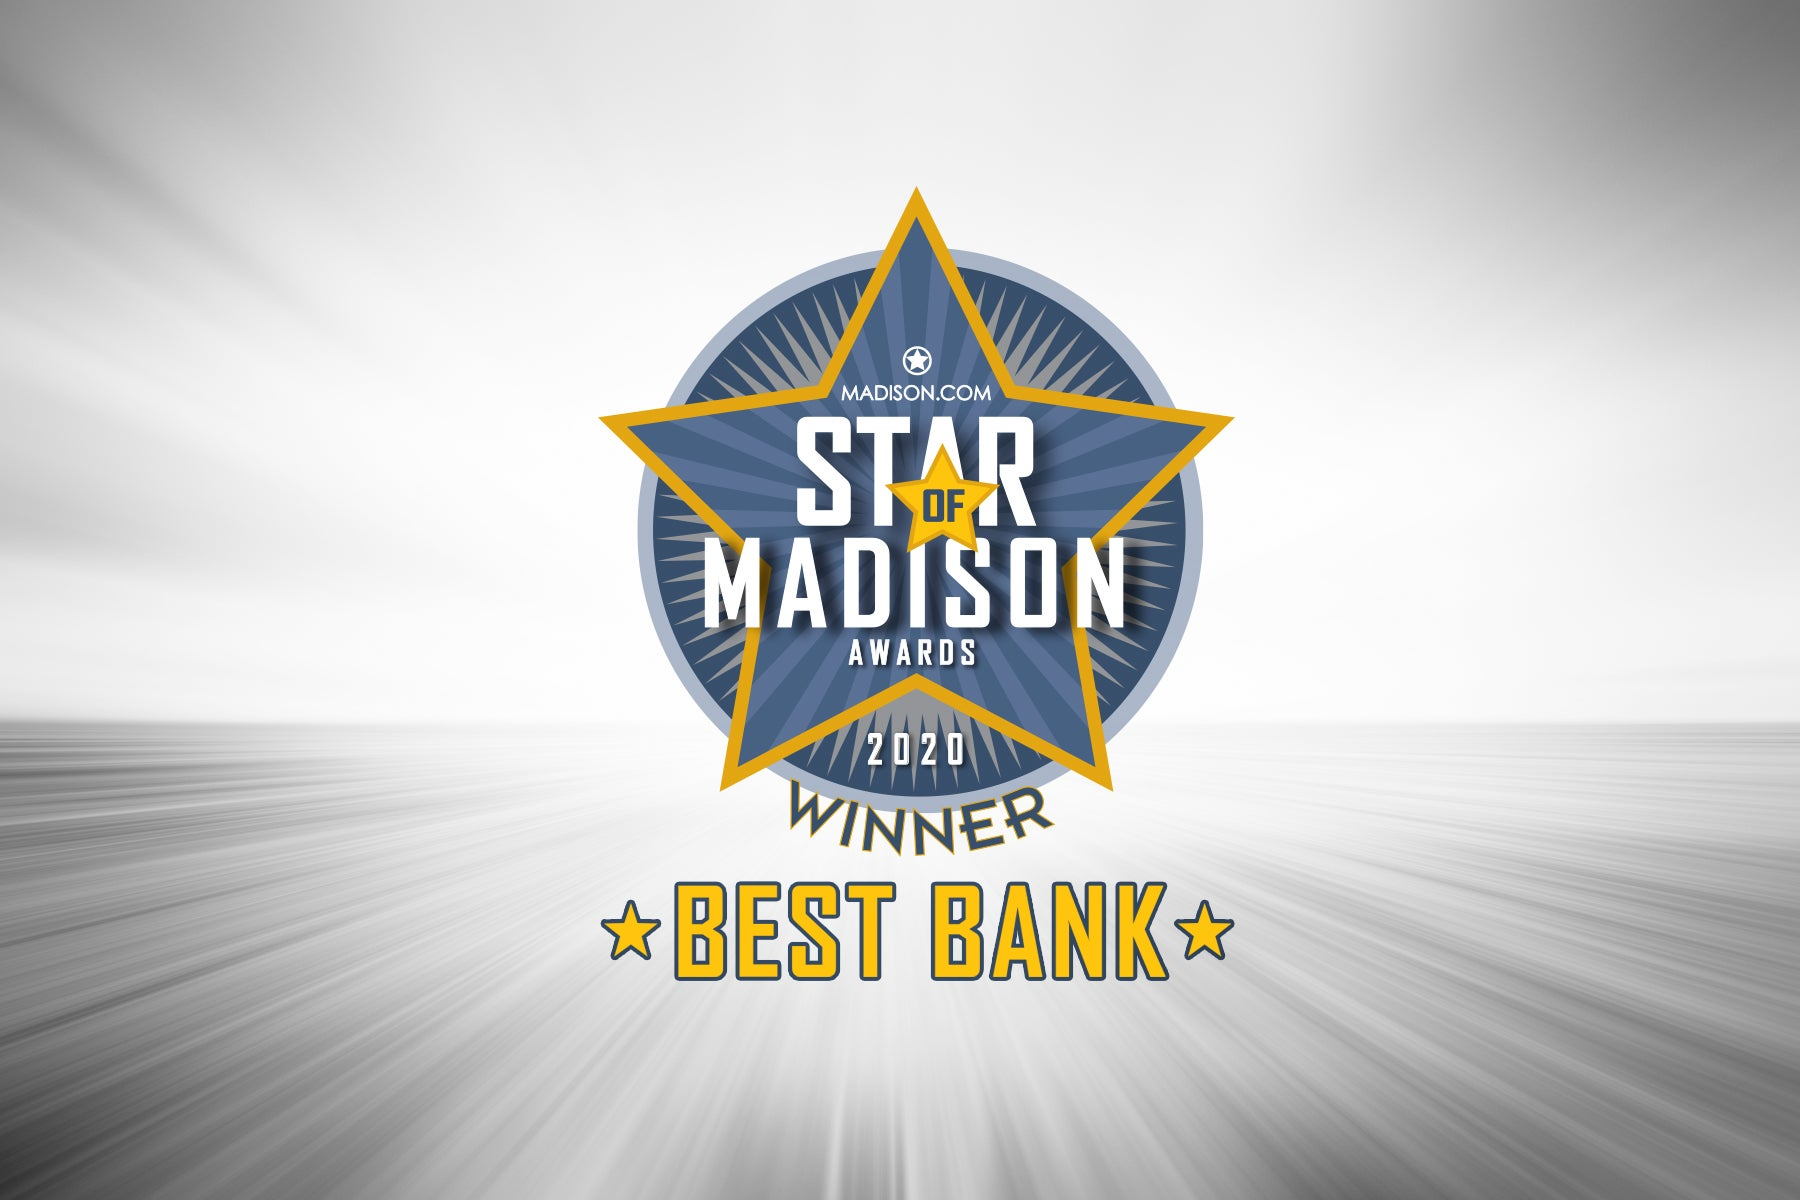 2020 Best Bank in Madison